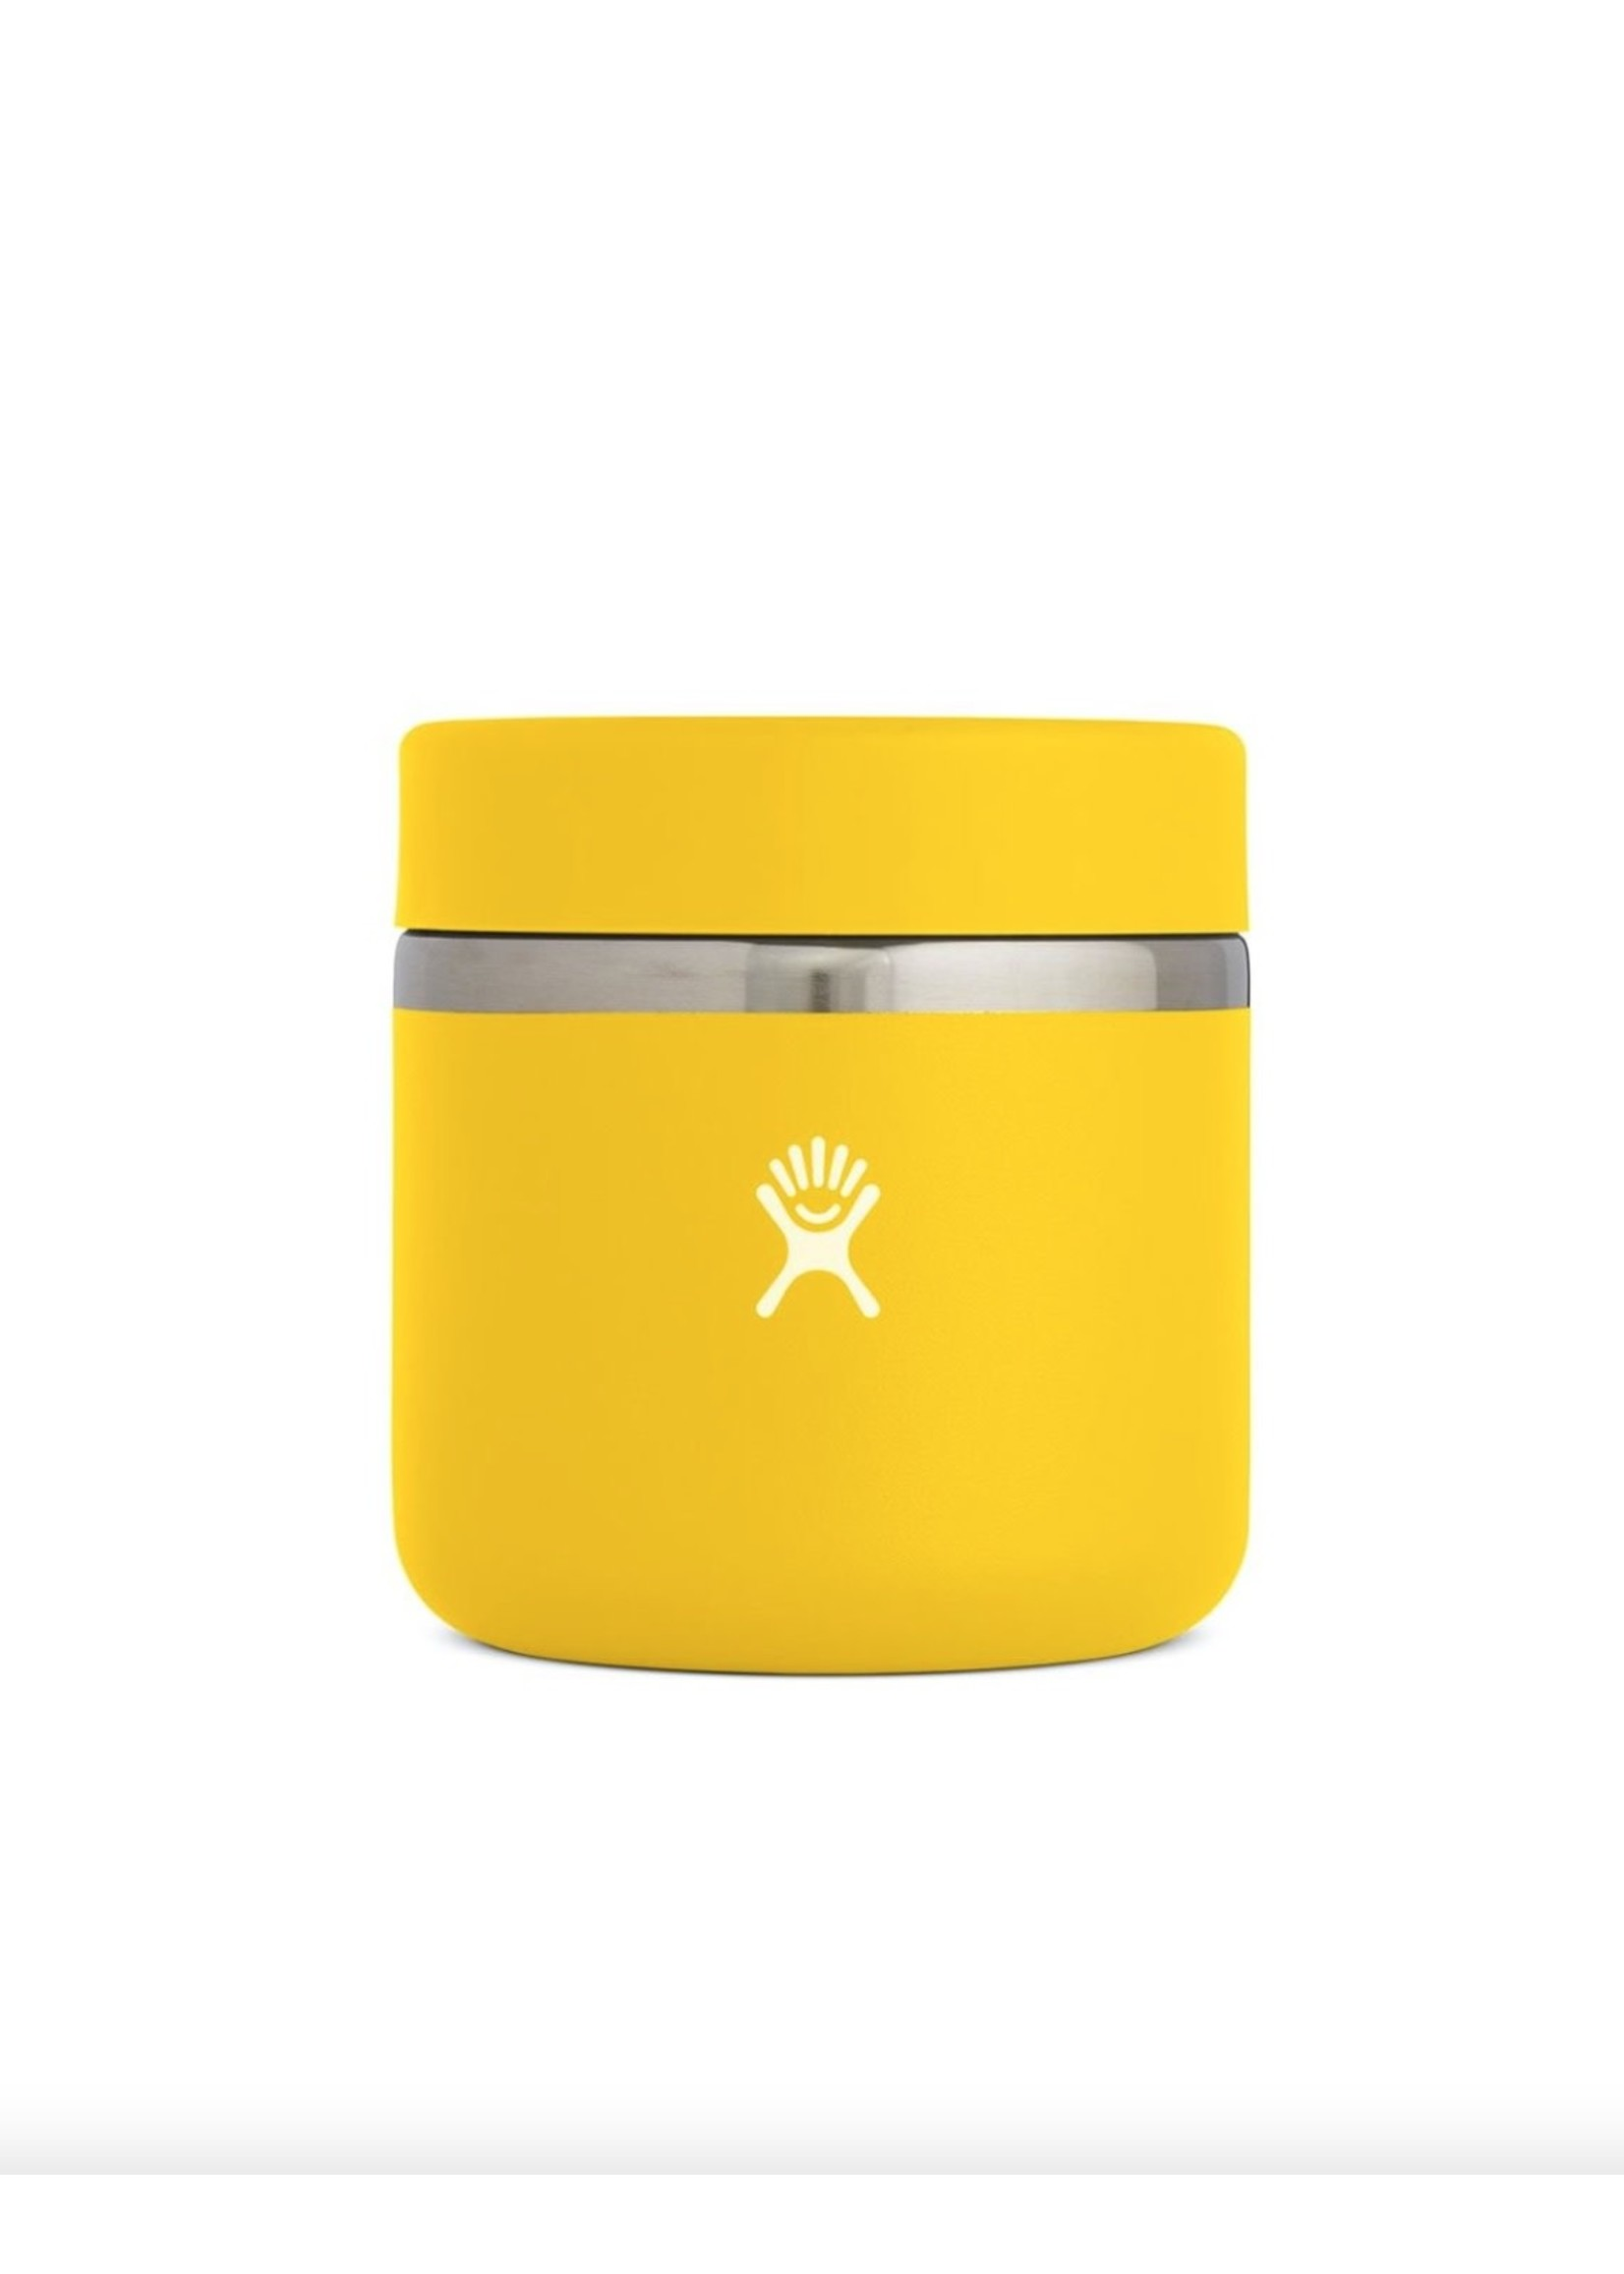 Hydro Flask Hydro Flask, 20oz Insulated Stainless Food Jar